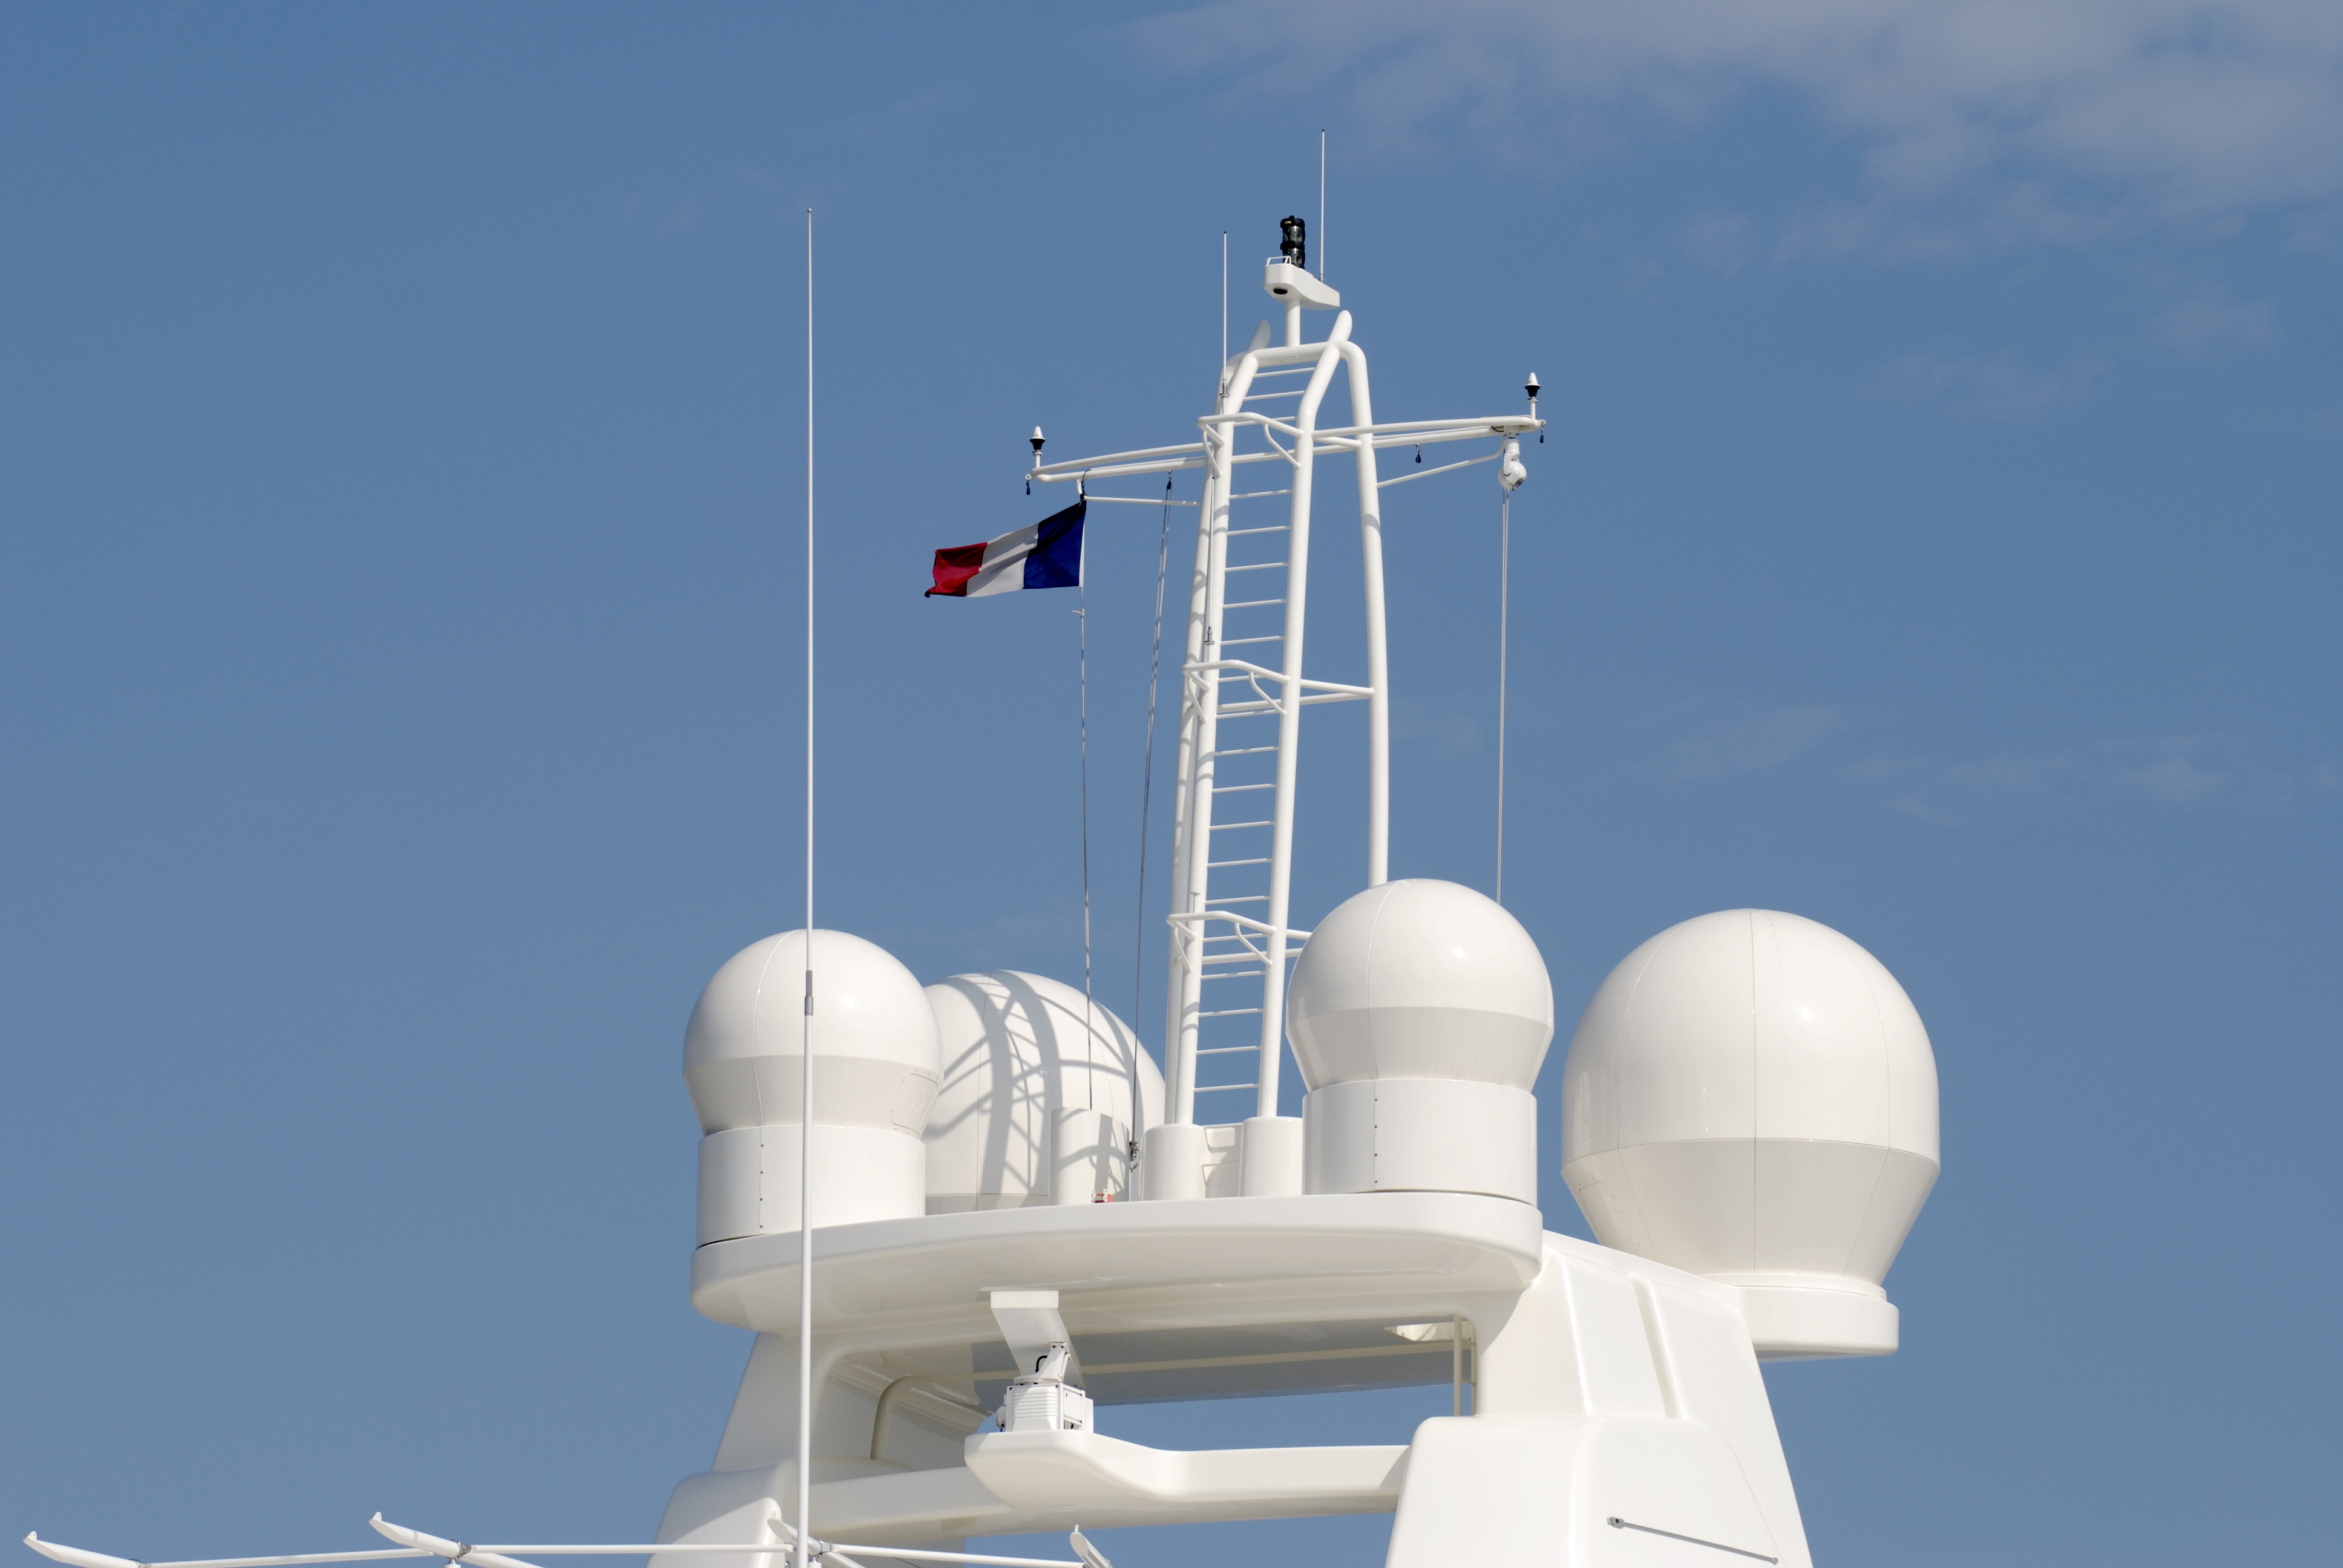 superyacht comm tower cybersecure-1